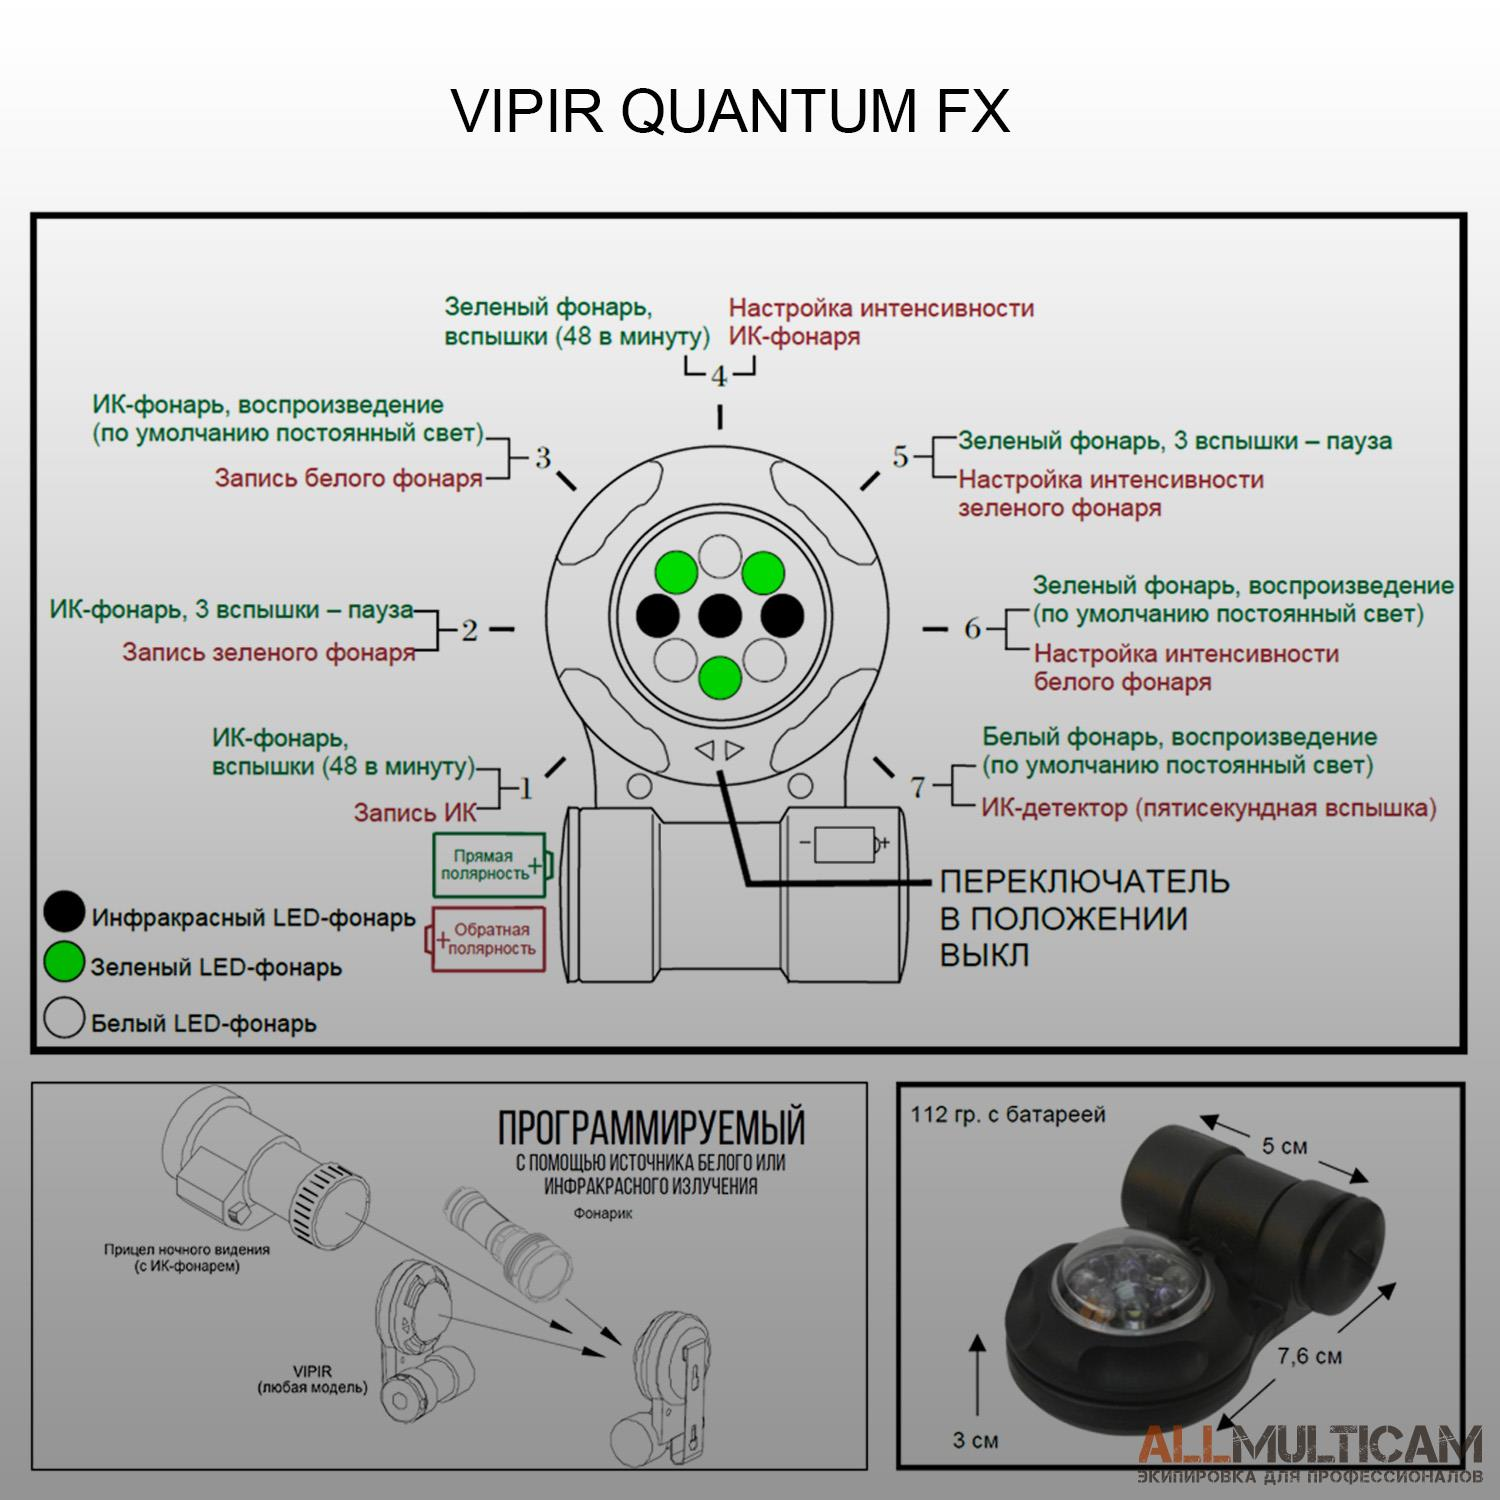 Маркер VIPIR Quantum FX Adventure Lights